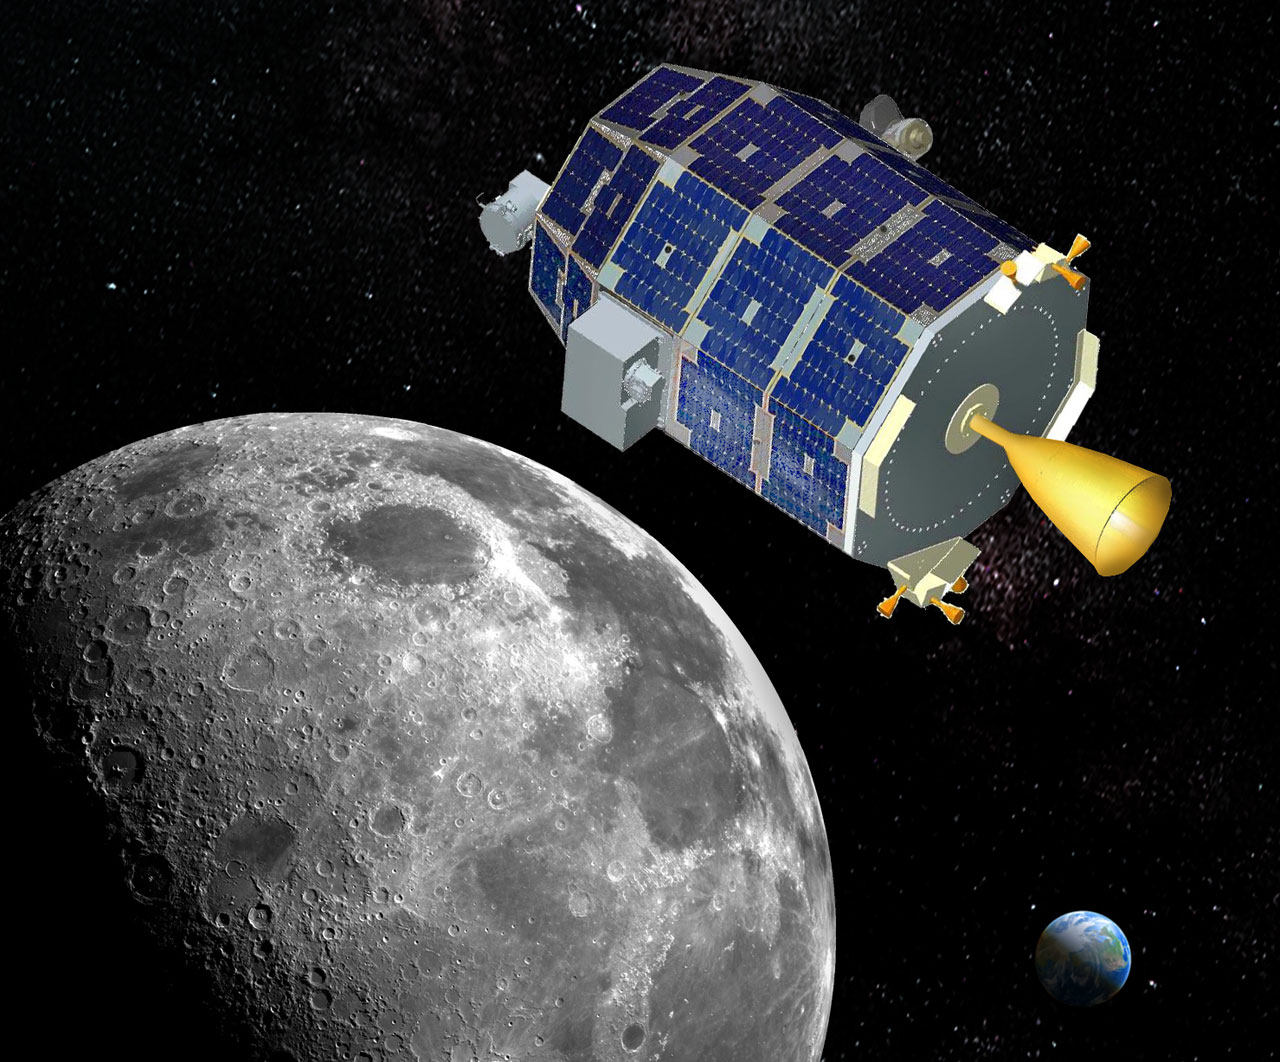 Lunar Atmosphere And Dust Environment Explorer Astronomy Wiki